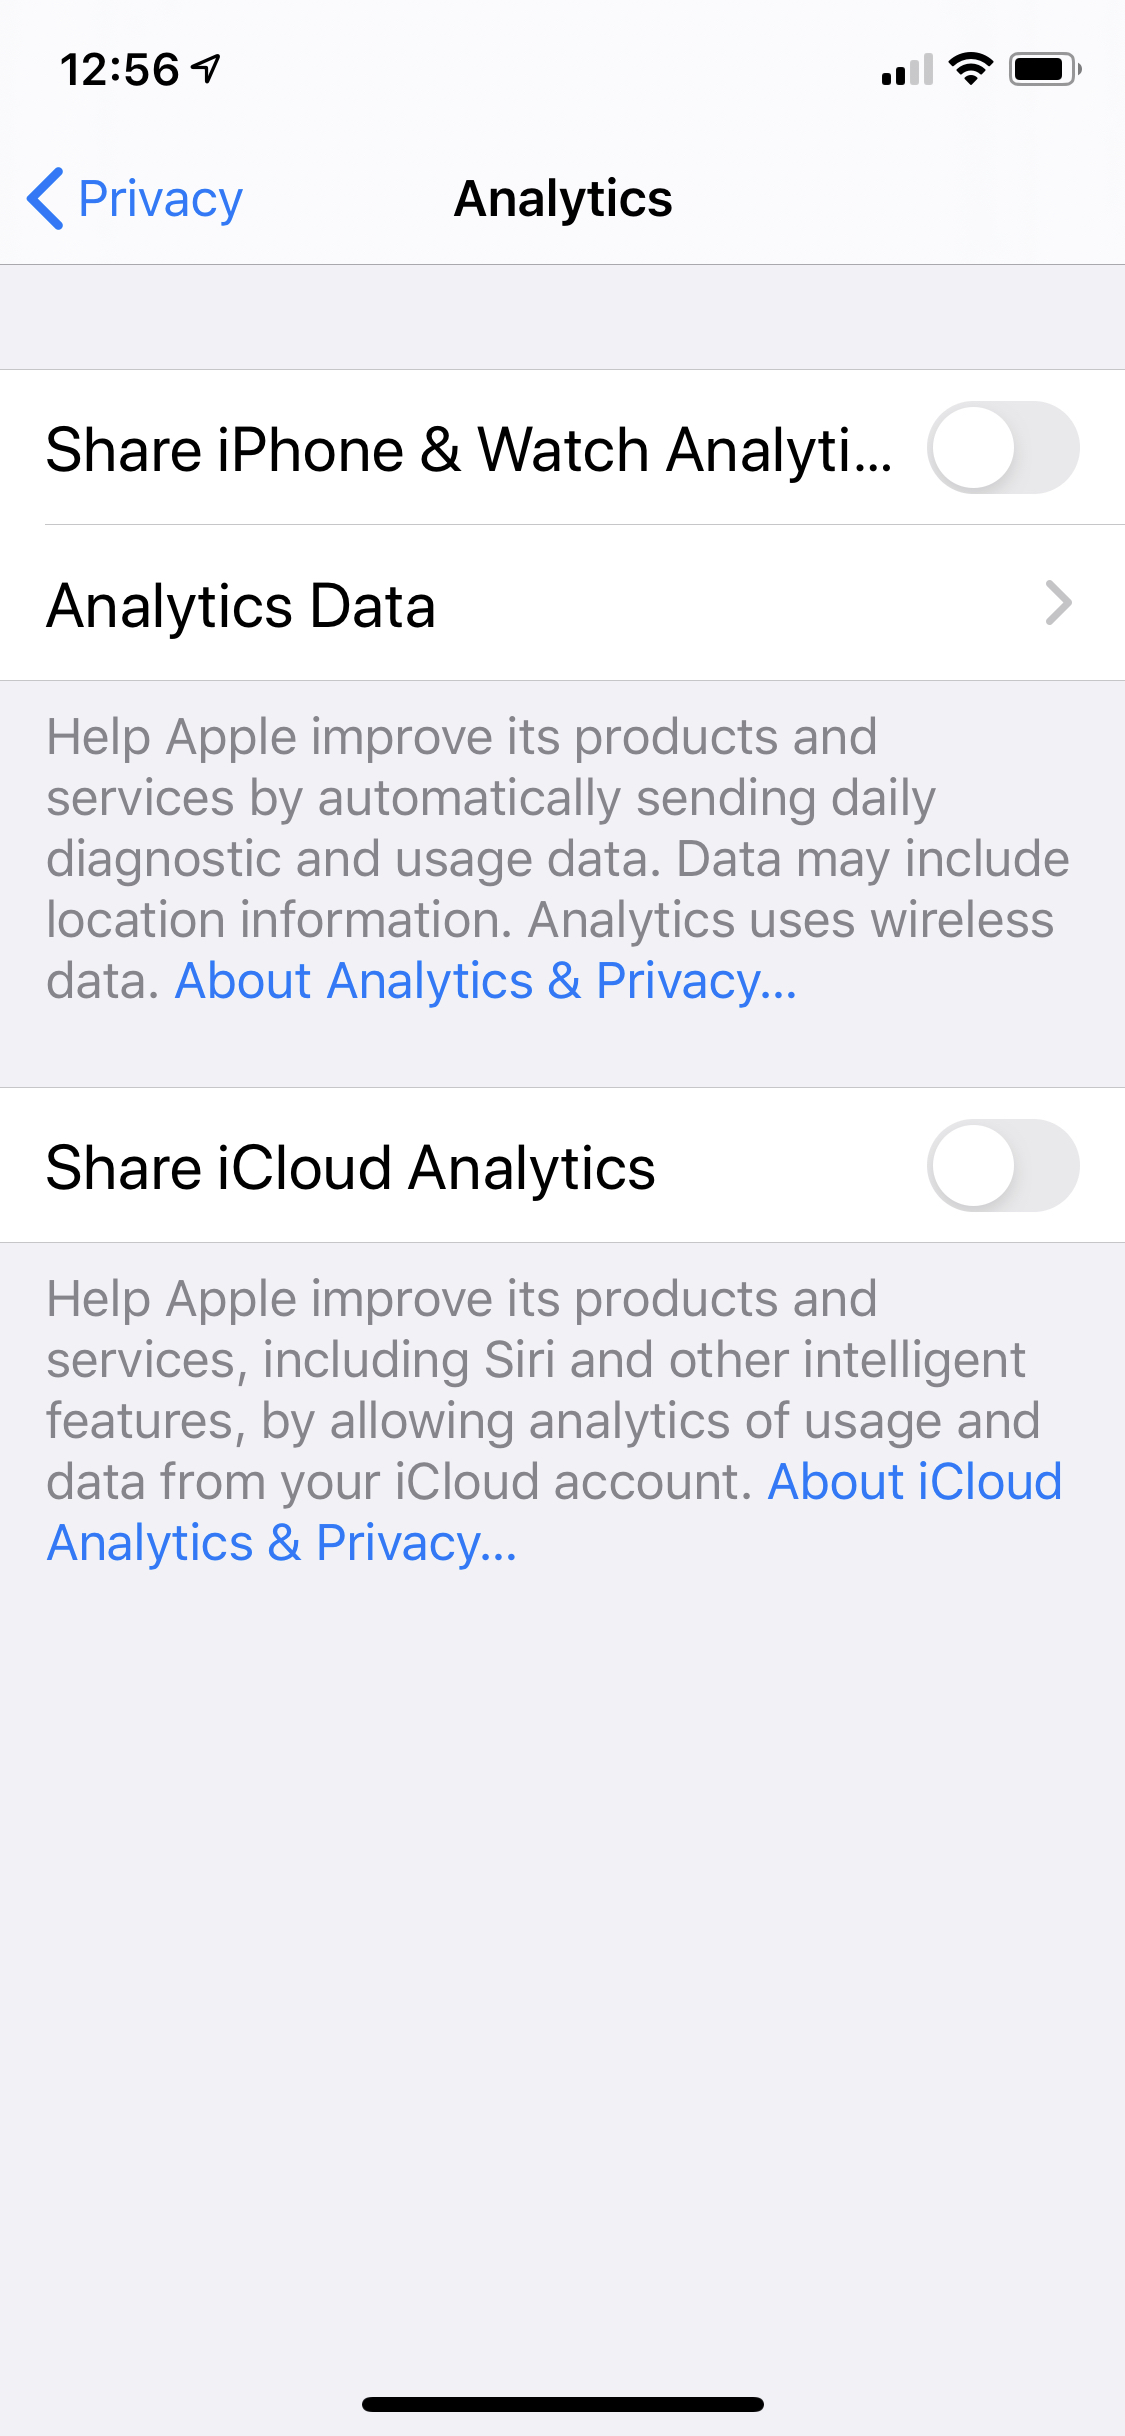 The iOS Settings app's Privacy > Analytics screen with both analytics options unchecked.